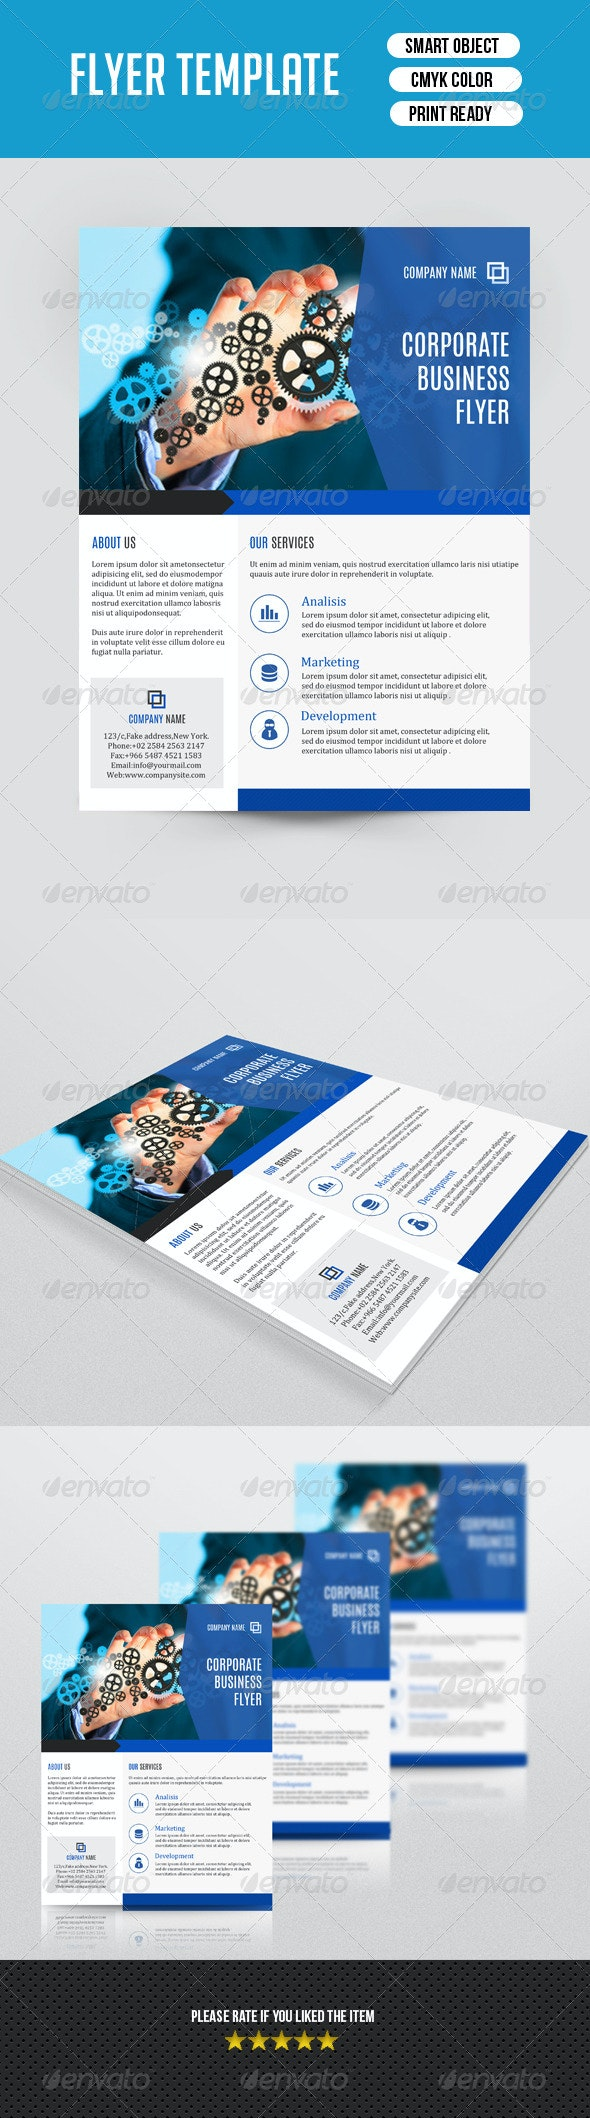 Corporate Flyer Template-V83 - Corporate Flyers